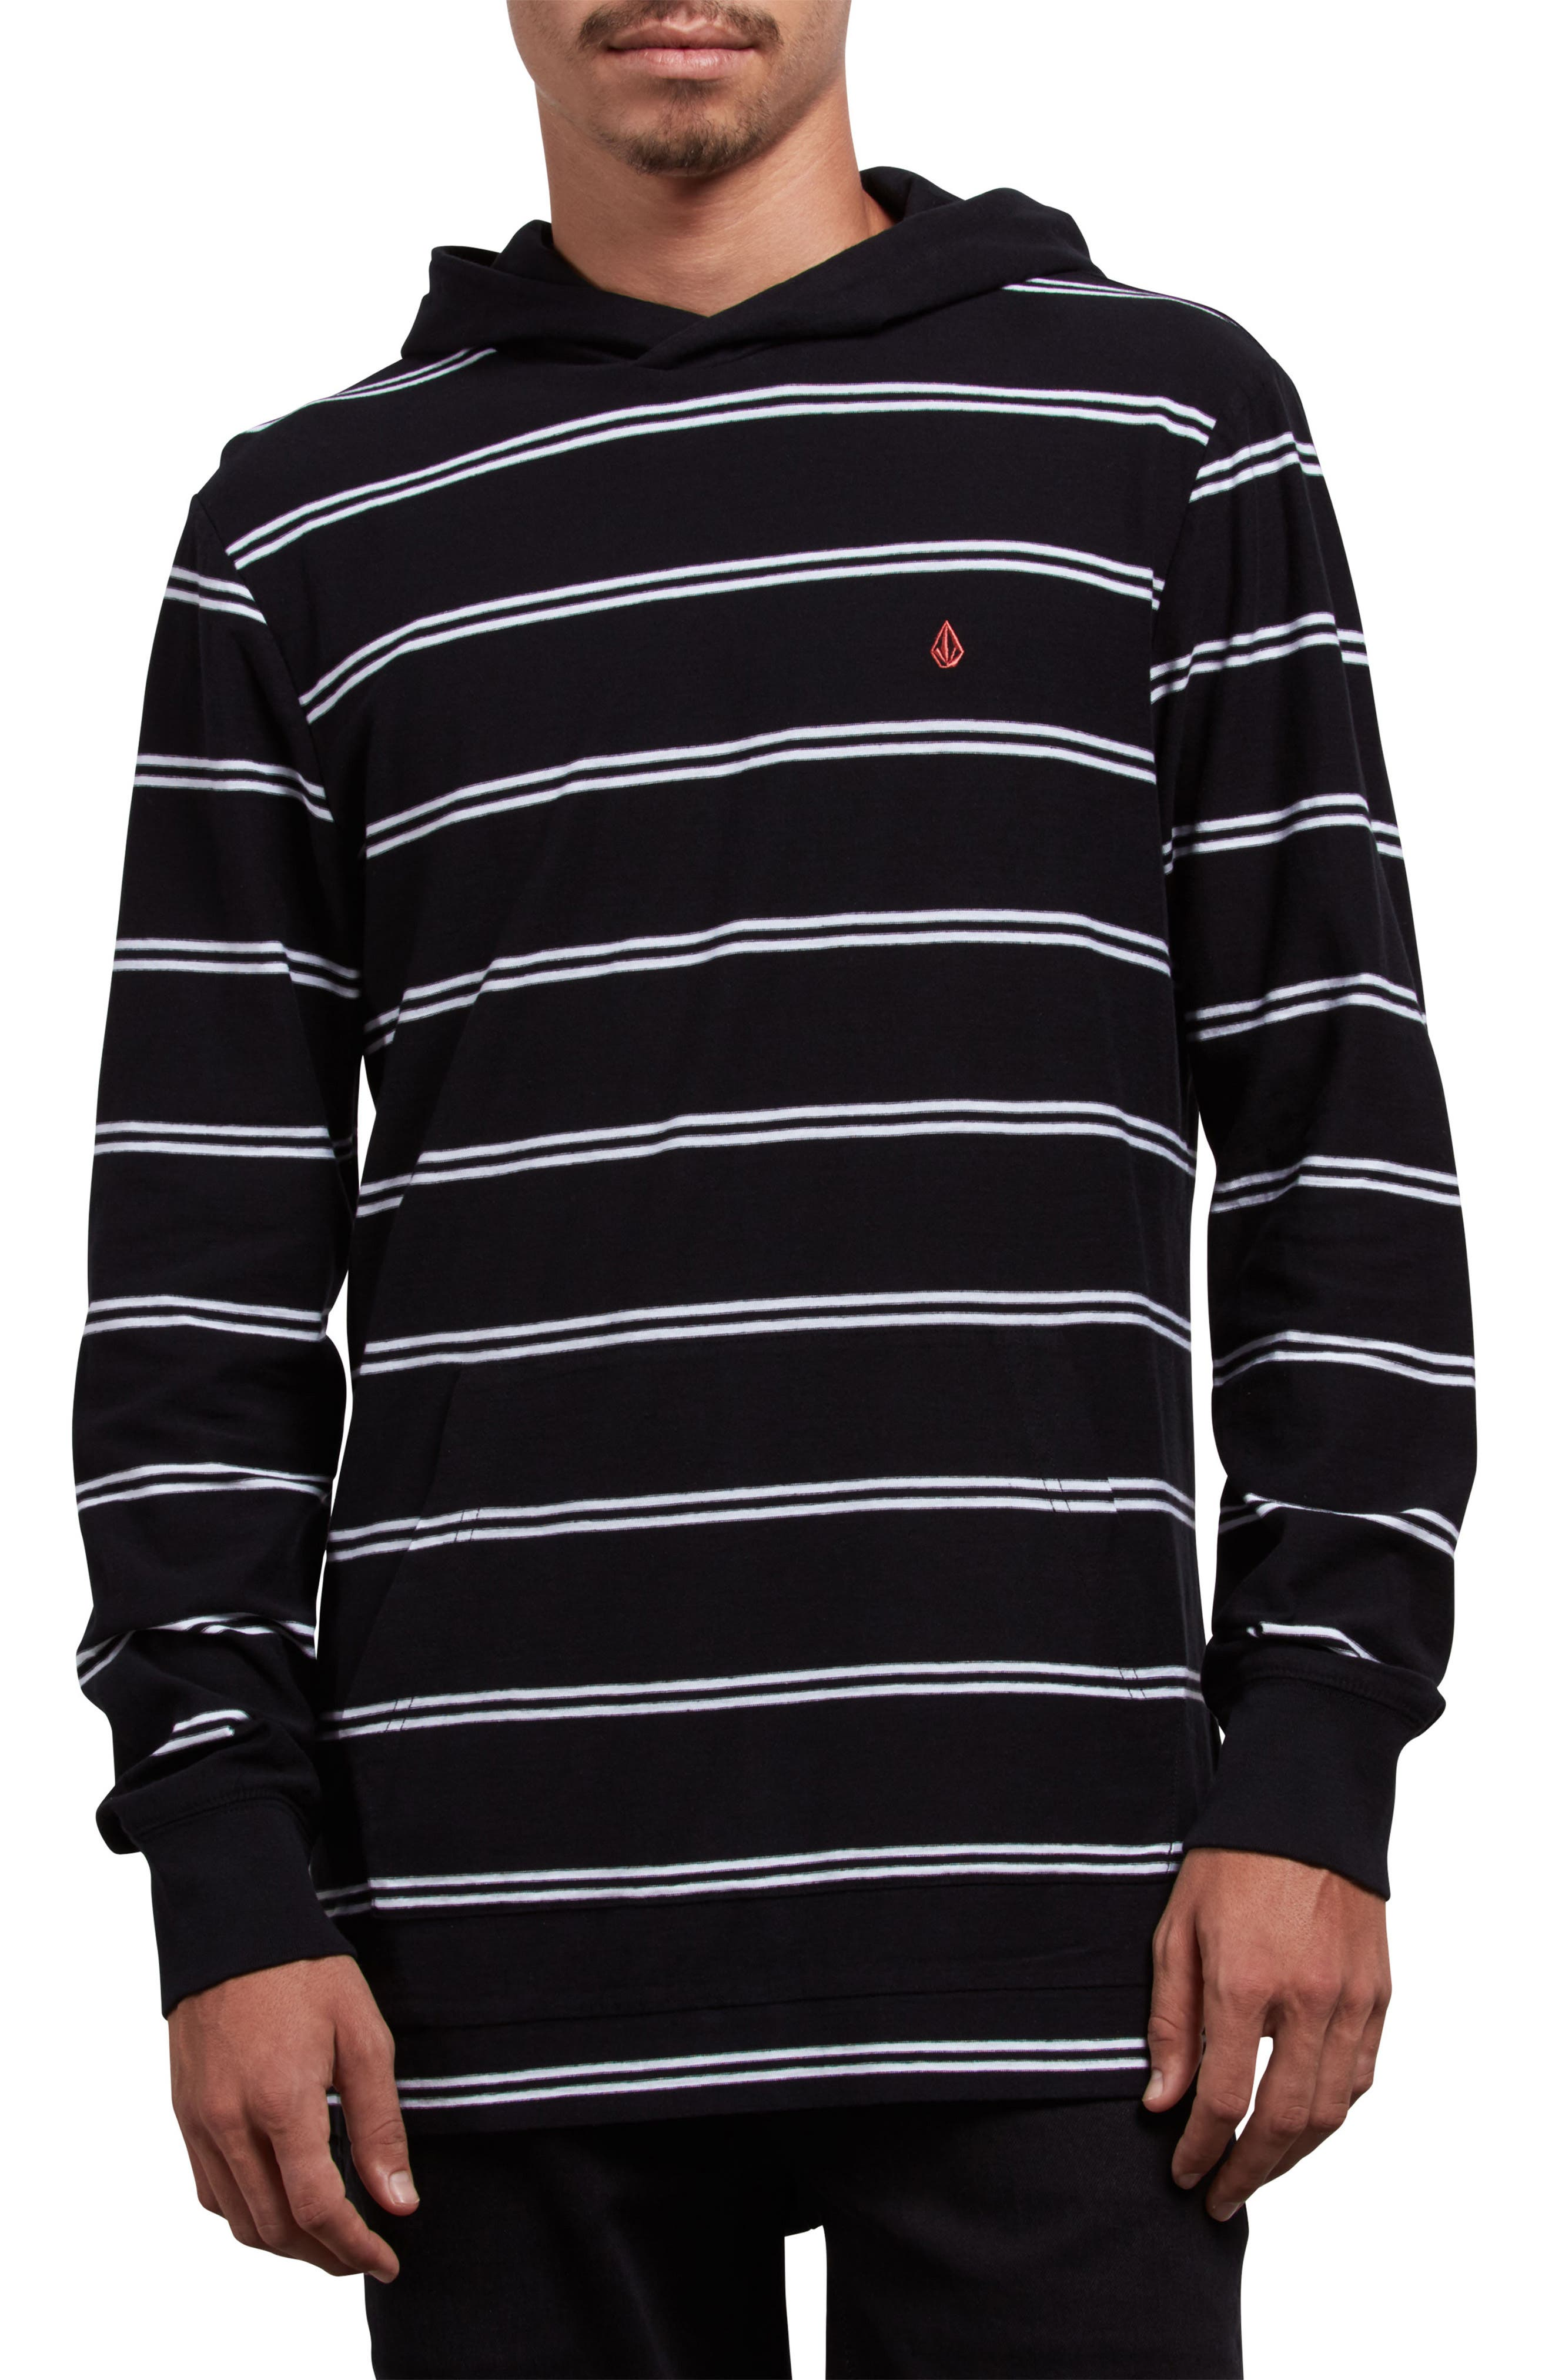 Randall Striped Pullover Hoodie,                             Main thumbnail 1, color,                             BLACK